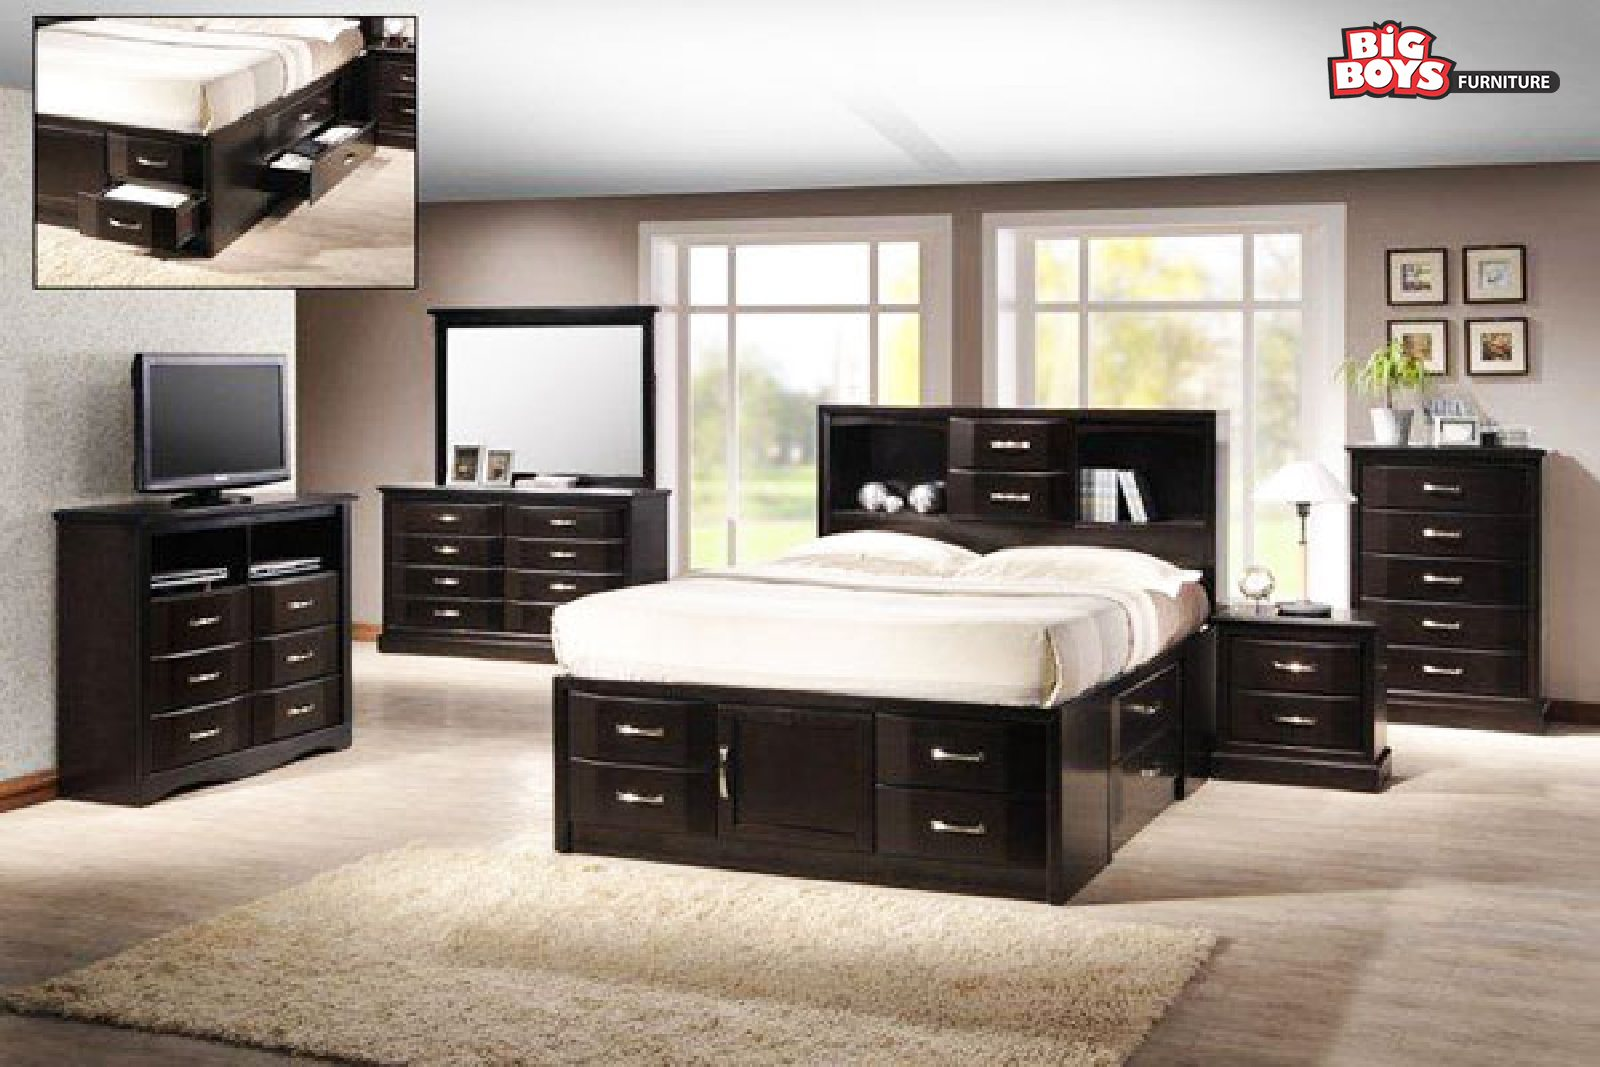 Bedroom Suites in black Big-Boys-Furniture-Delta